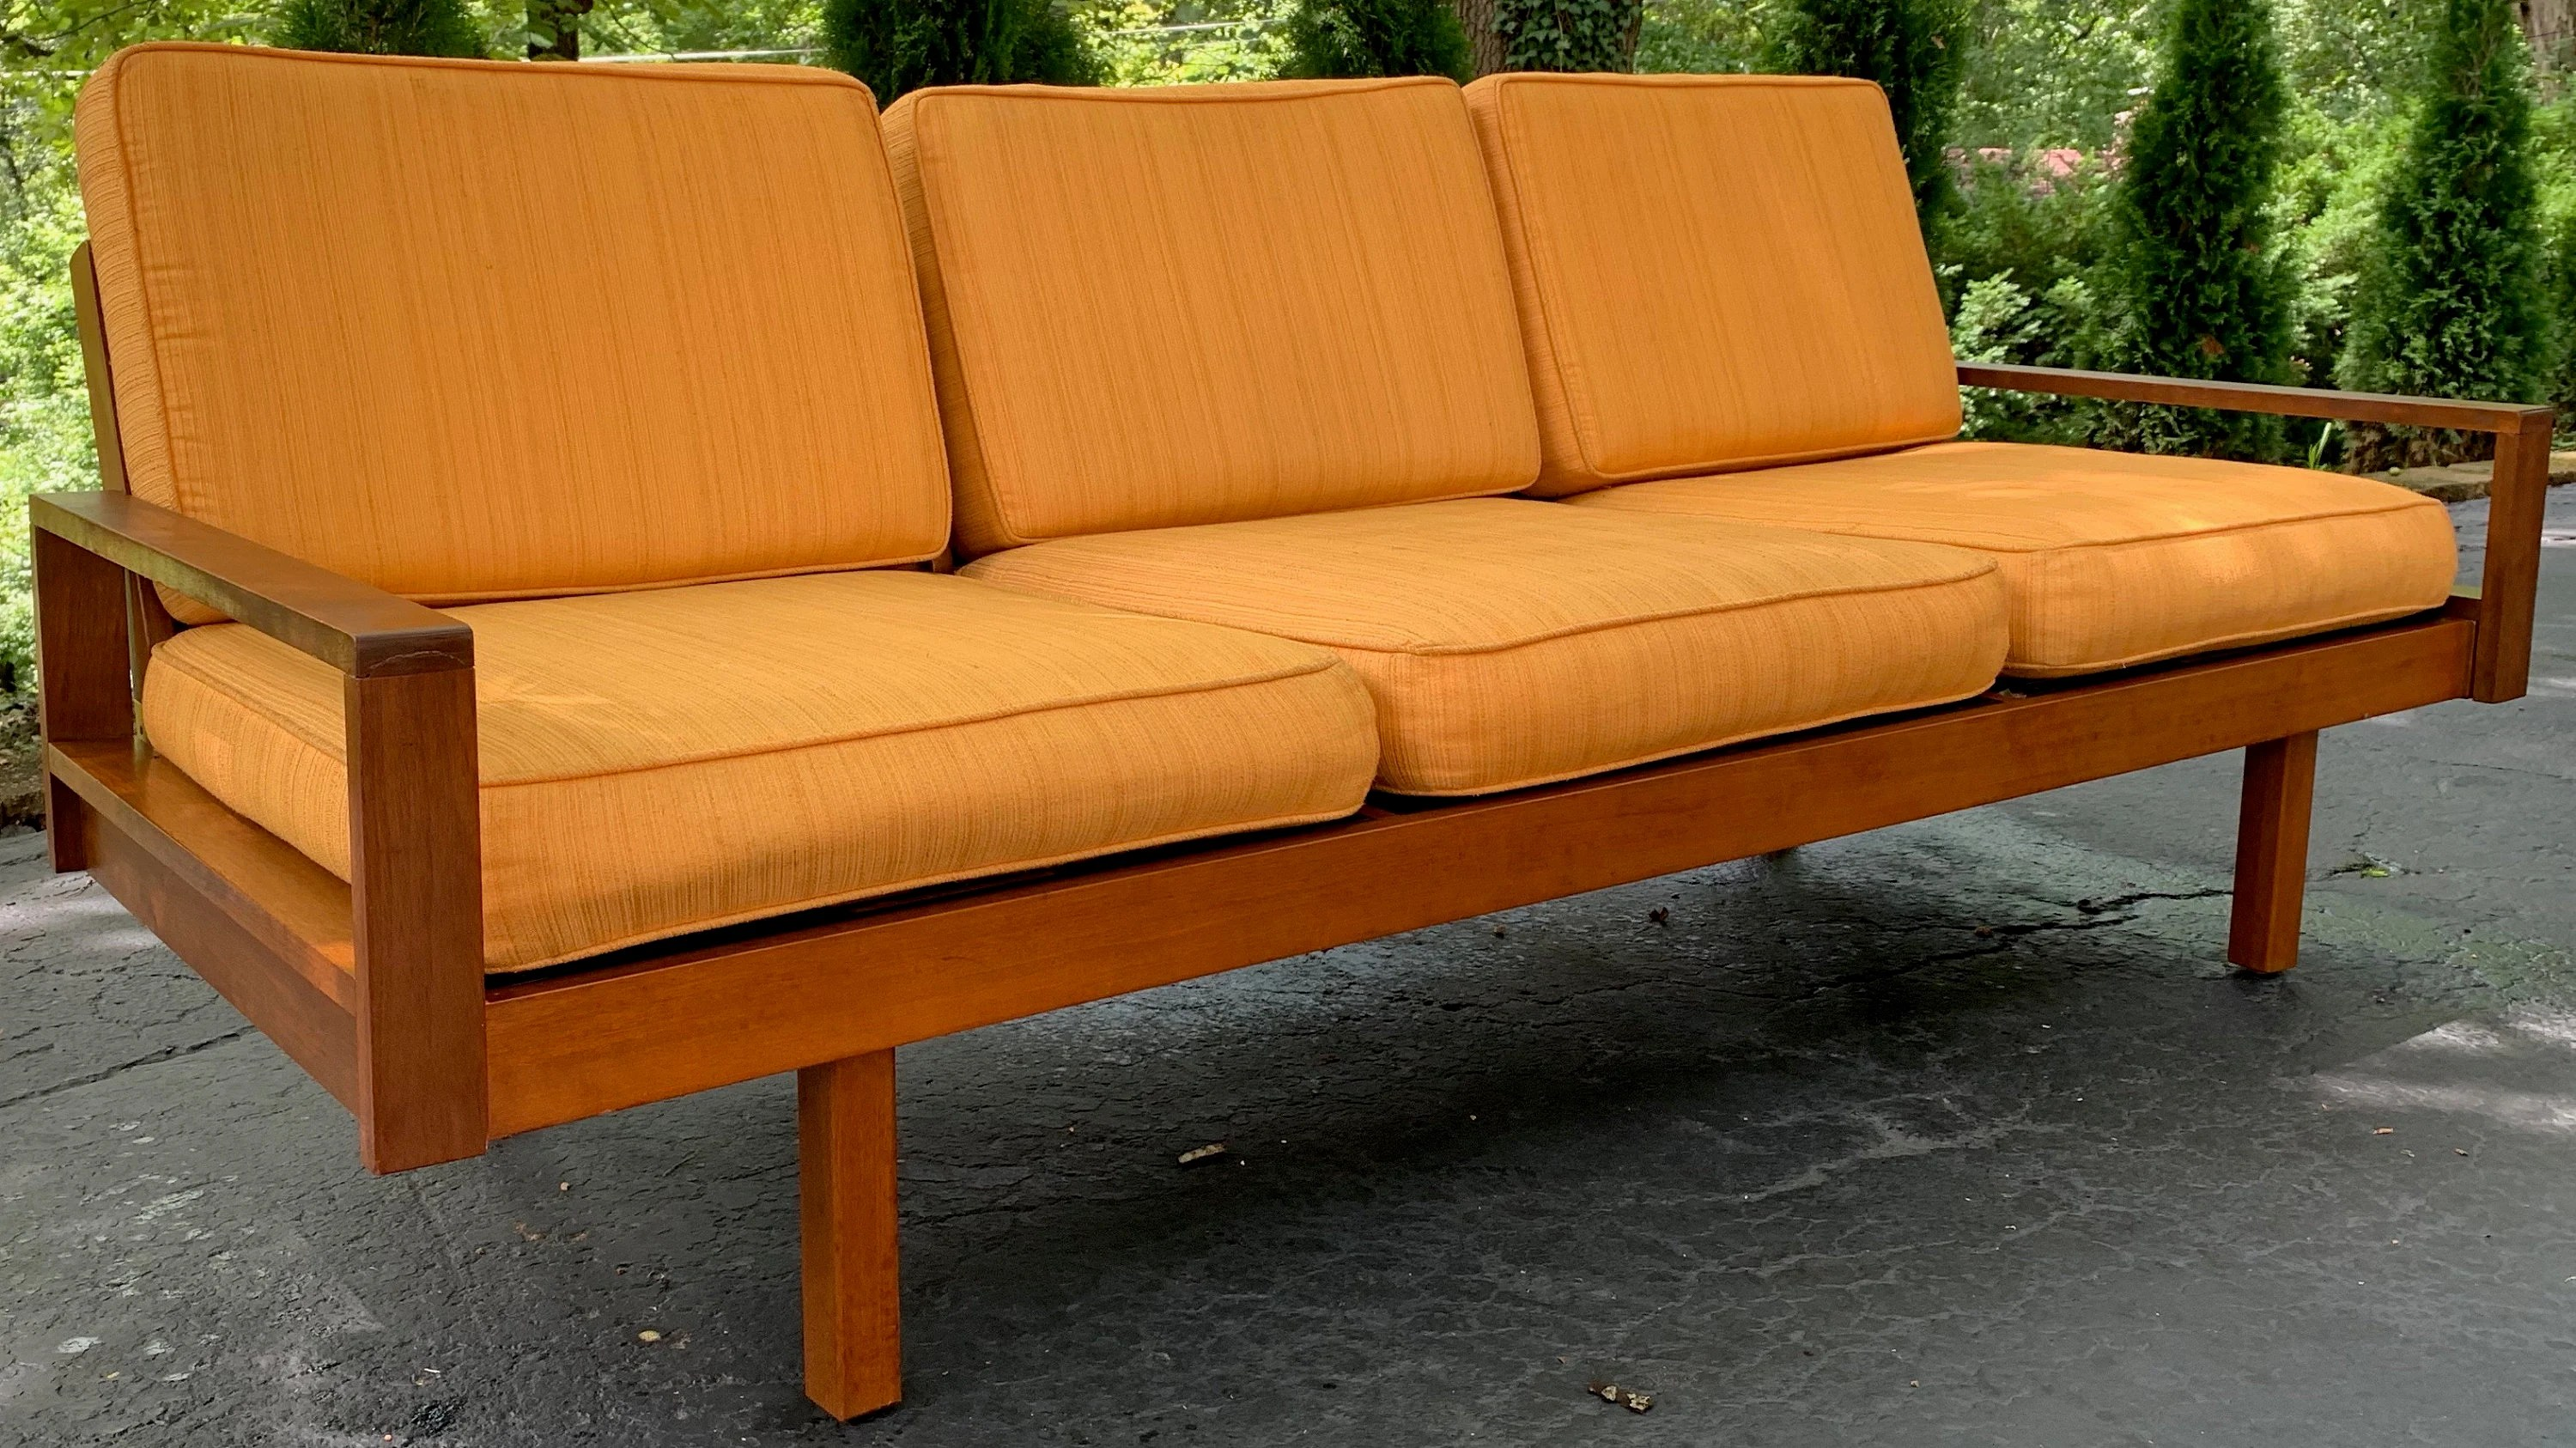 Vintage 50s Sofa Couch Bench By Martin Borenstein For